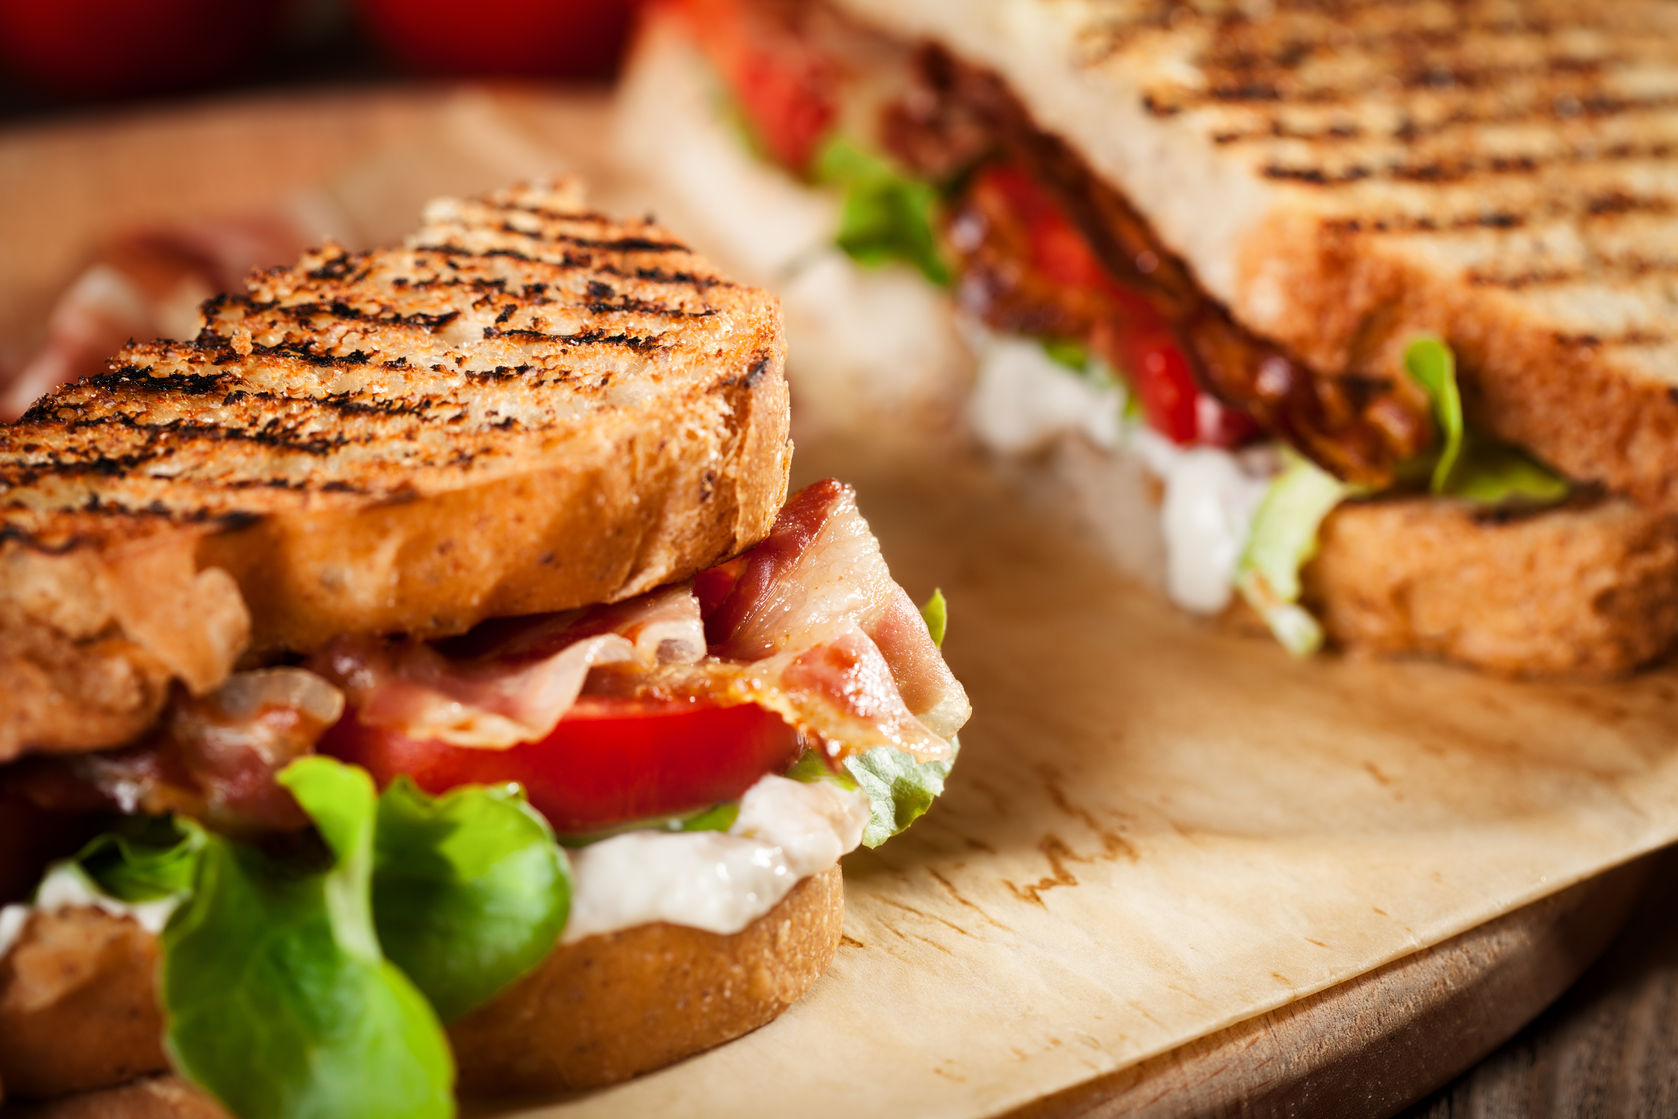 46731636 - sandwich with tomato and bacon